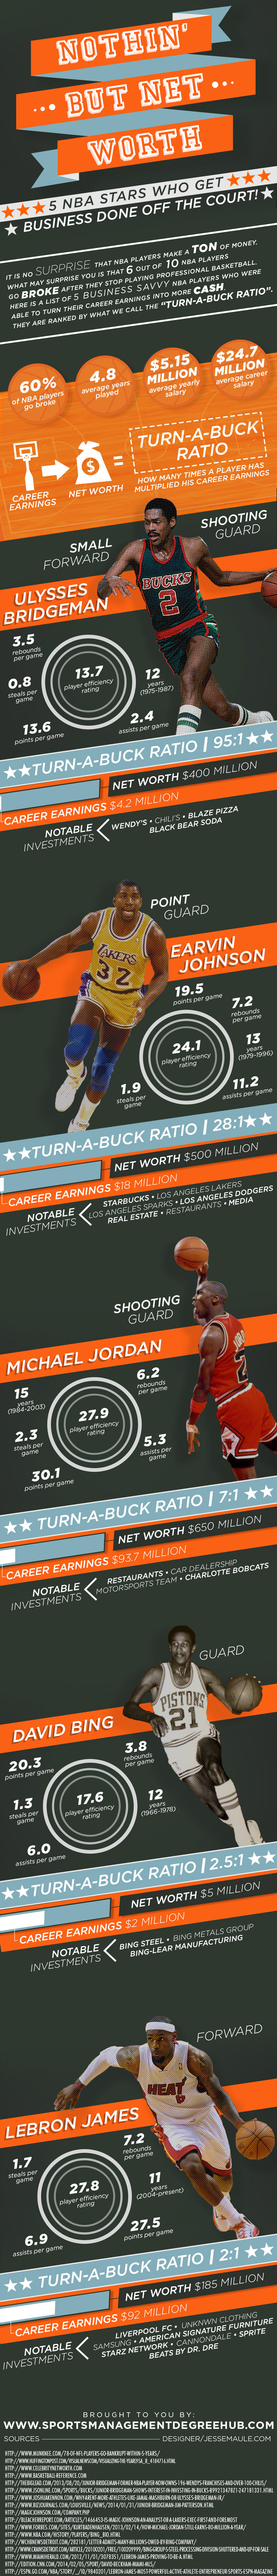 NBA-Players-that-Made-Millions